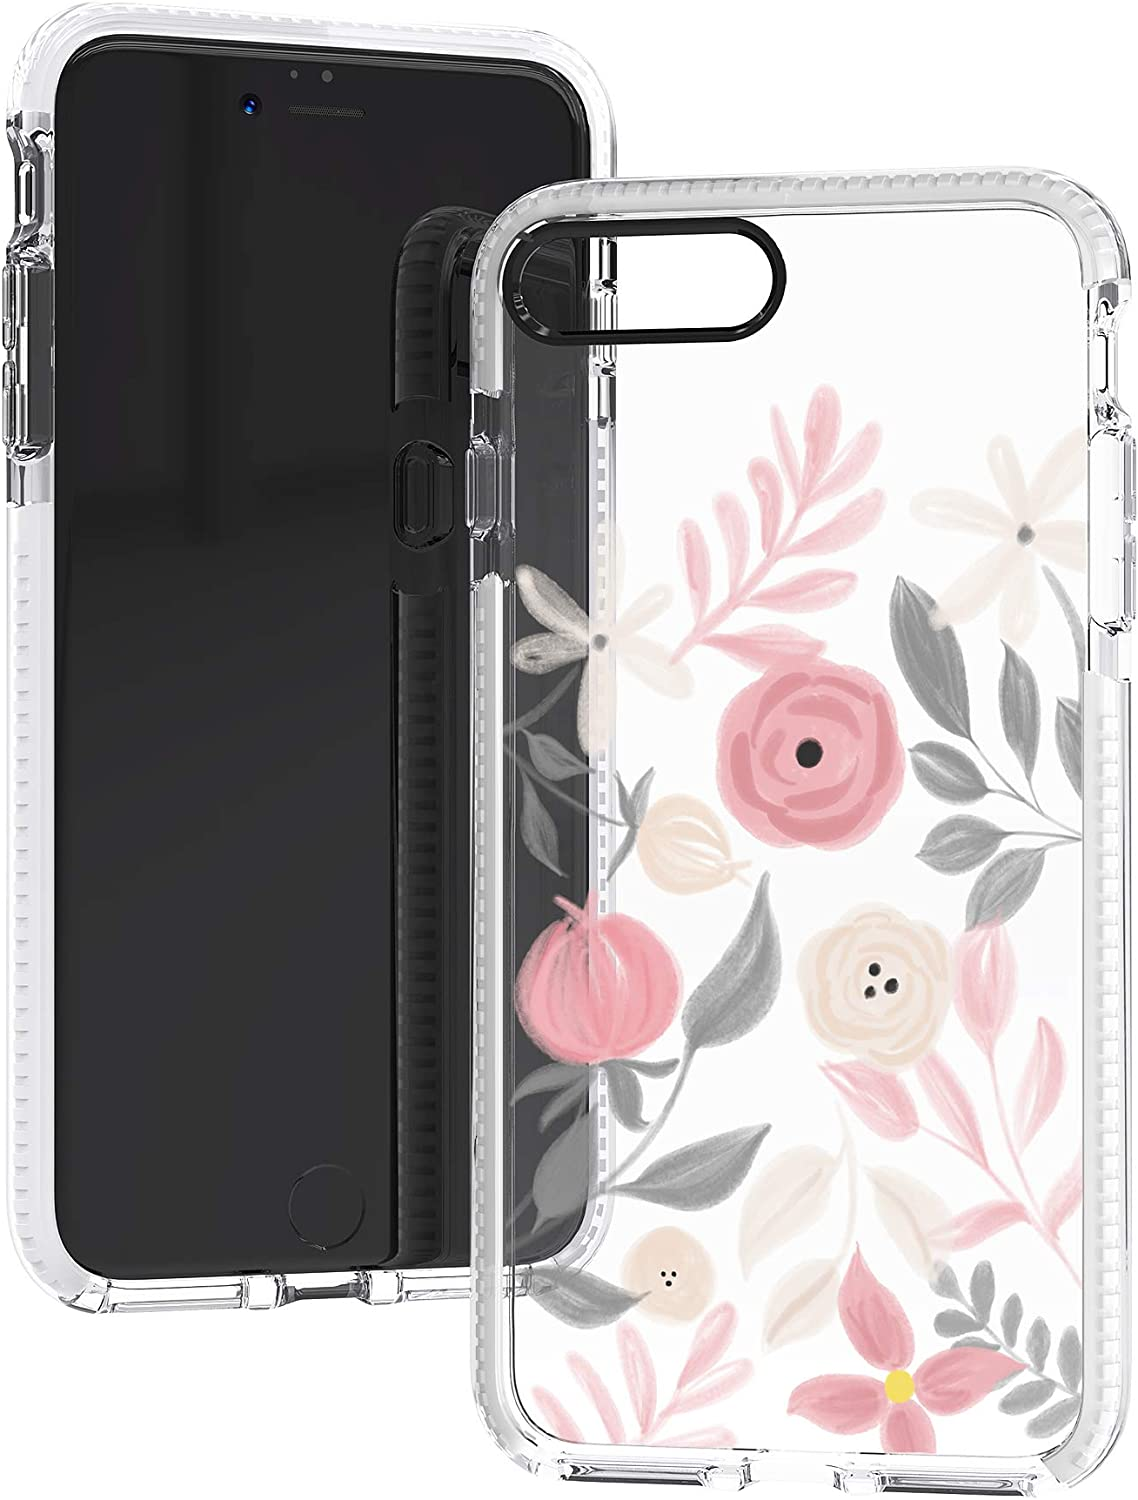 iPhone 7 Plus Case,iPhone 8 Plus Case,Painting Style Pink Grey Floral Flowers Roses Daisy Spring Trendy Hipster Girls Women Soft Protective Clear Case with Design Compatible for iPhone 7 Plus/8 Plus